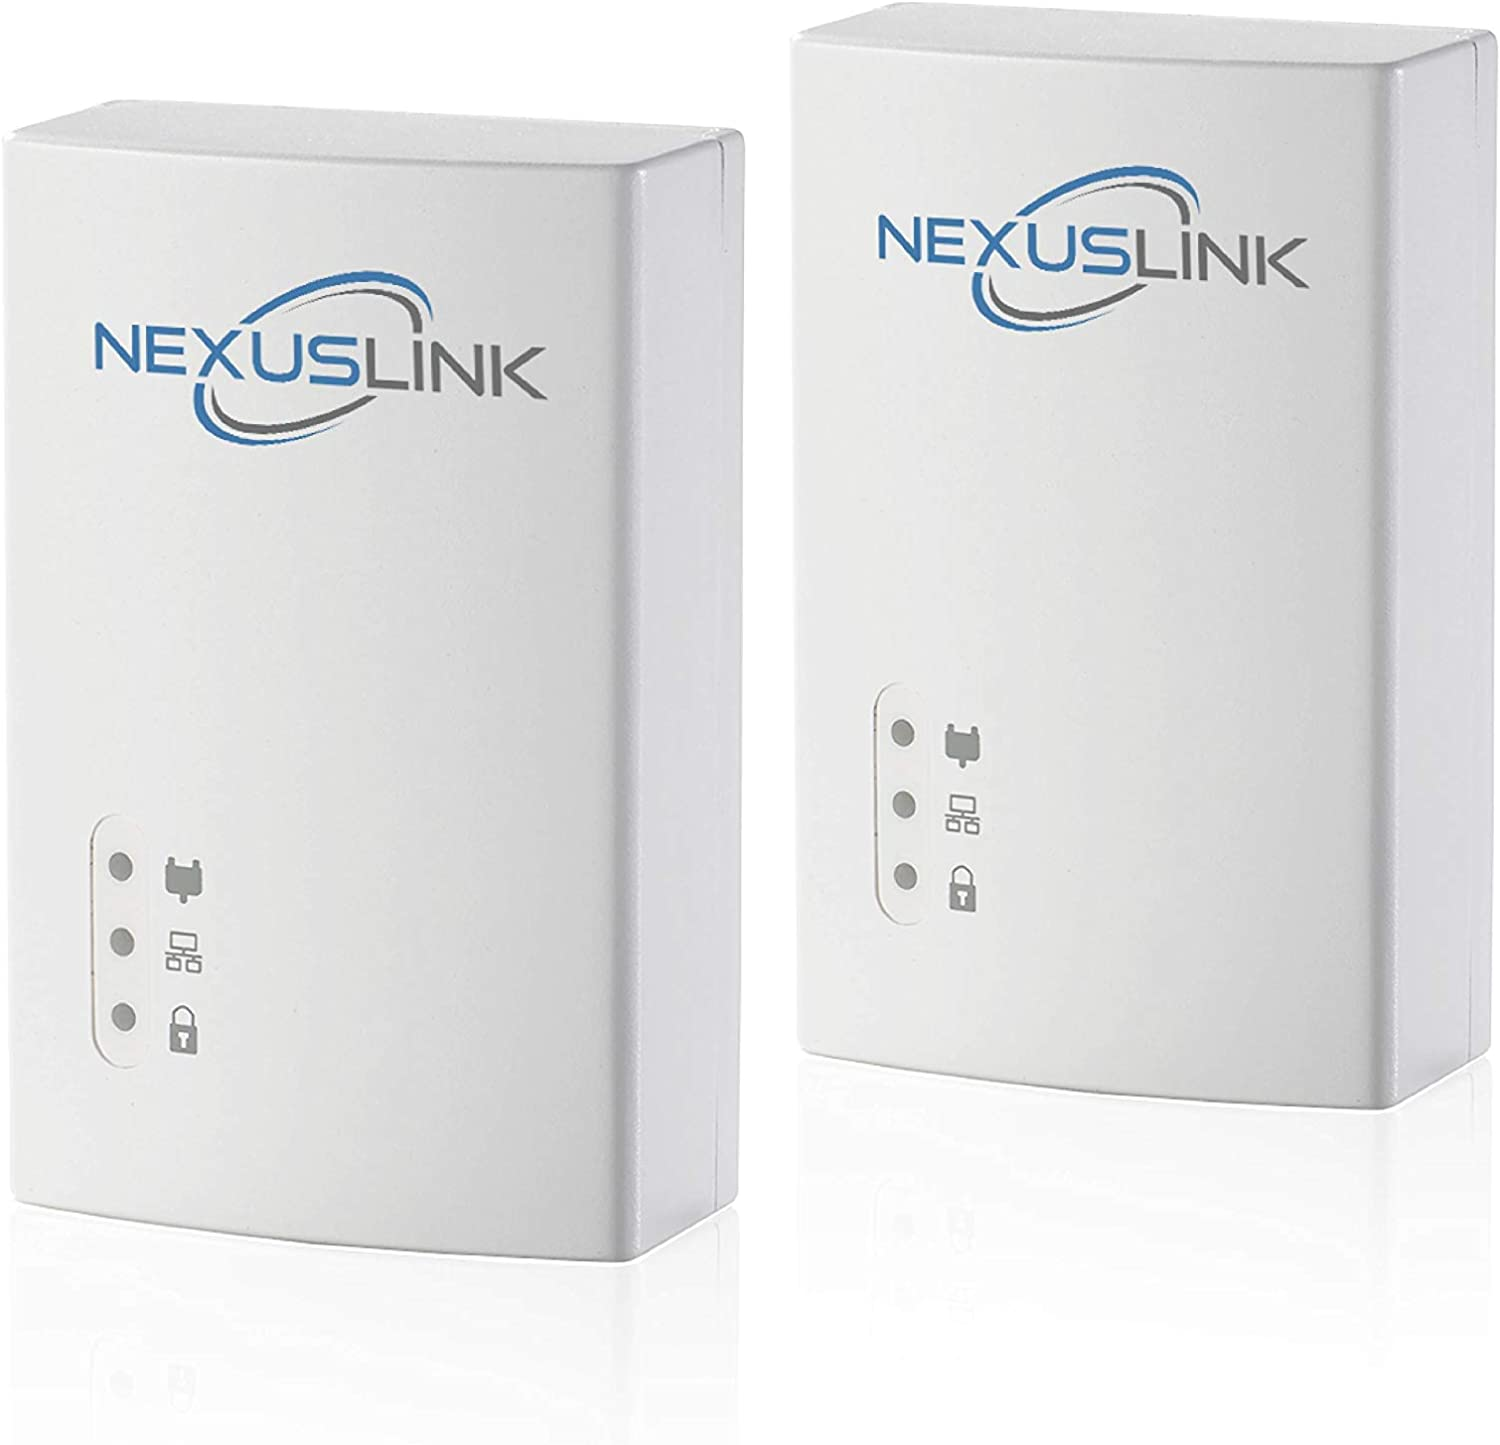 NexusLink G.hn Powerline Ethernet Adapter | 1200Mbps | Gigabit Port, Power Saving, Home Network Expander with Stable Ethernet Connection for Online Gaming, Video Streaming | 2-Unit Kit (GPL-1200-KIT)